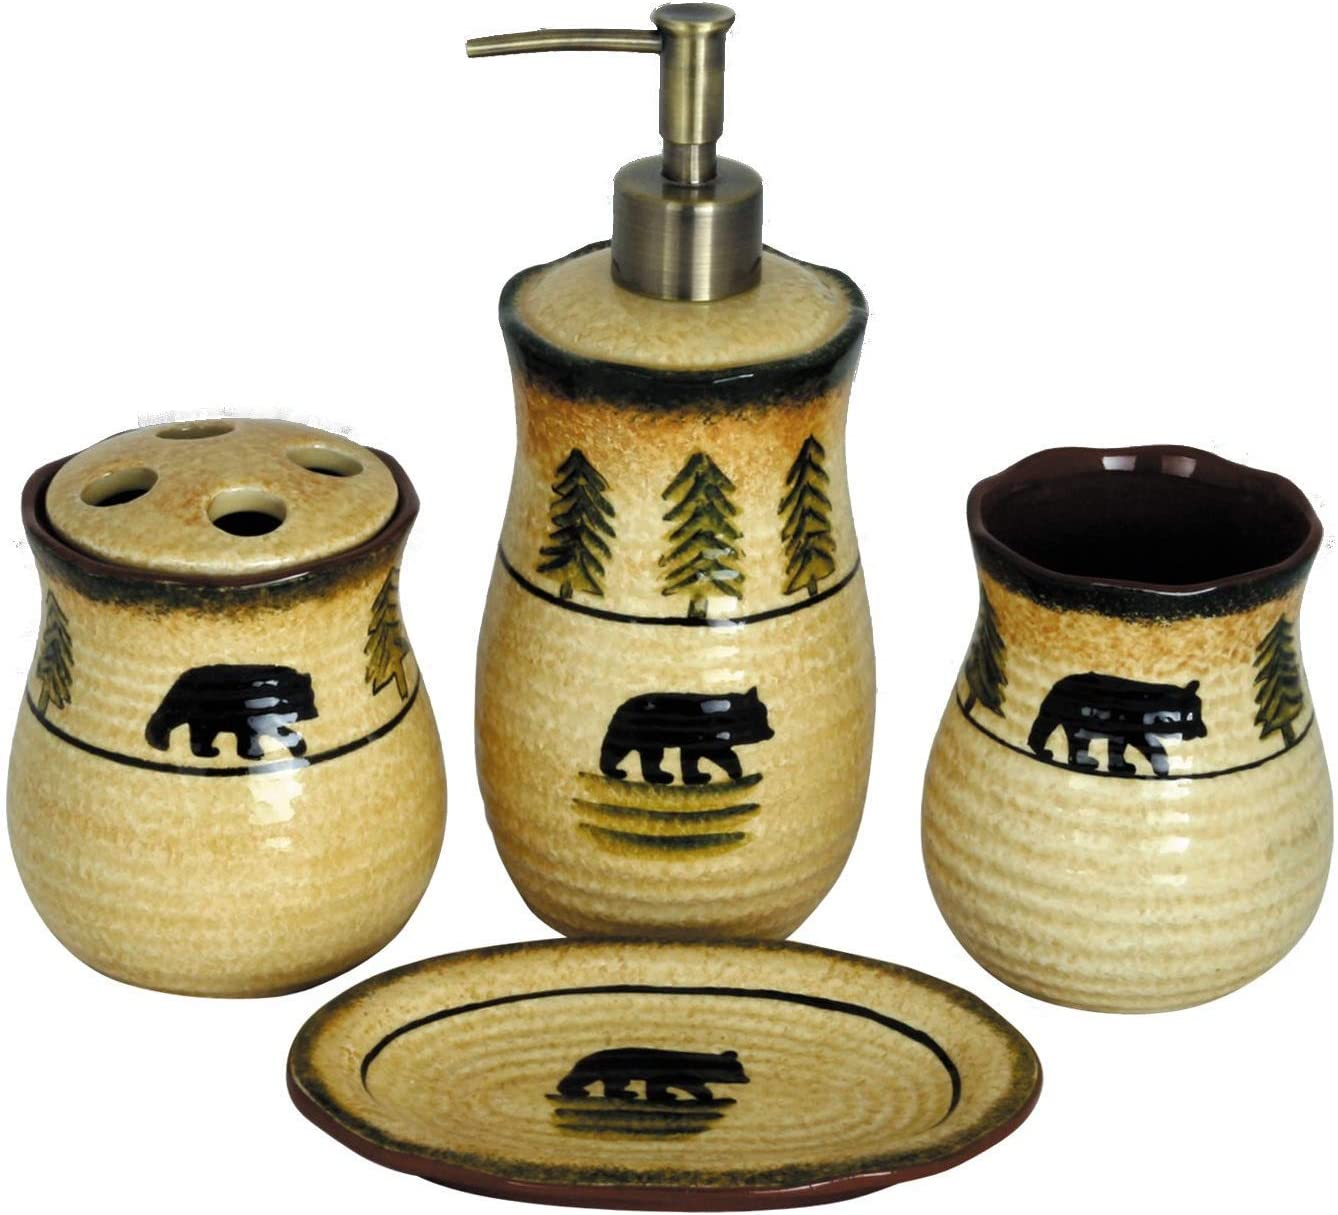 HiEnd Accents Rustic Black Bear 4-PC Lodge Bathroom Countertop Accessory Set, Tan, Forest Green & Brown